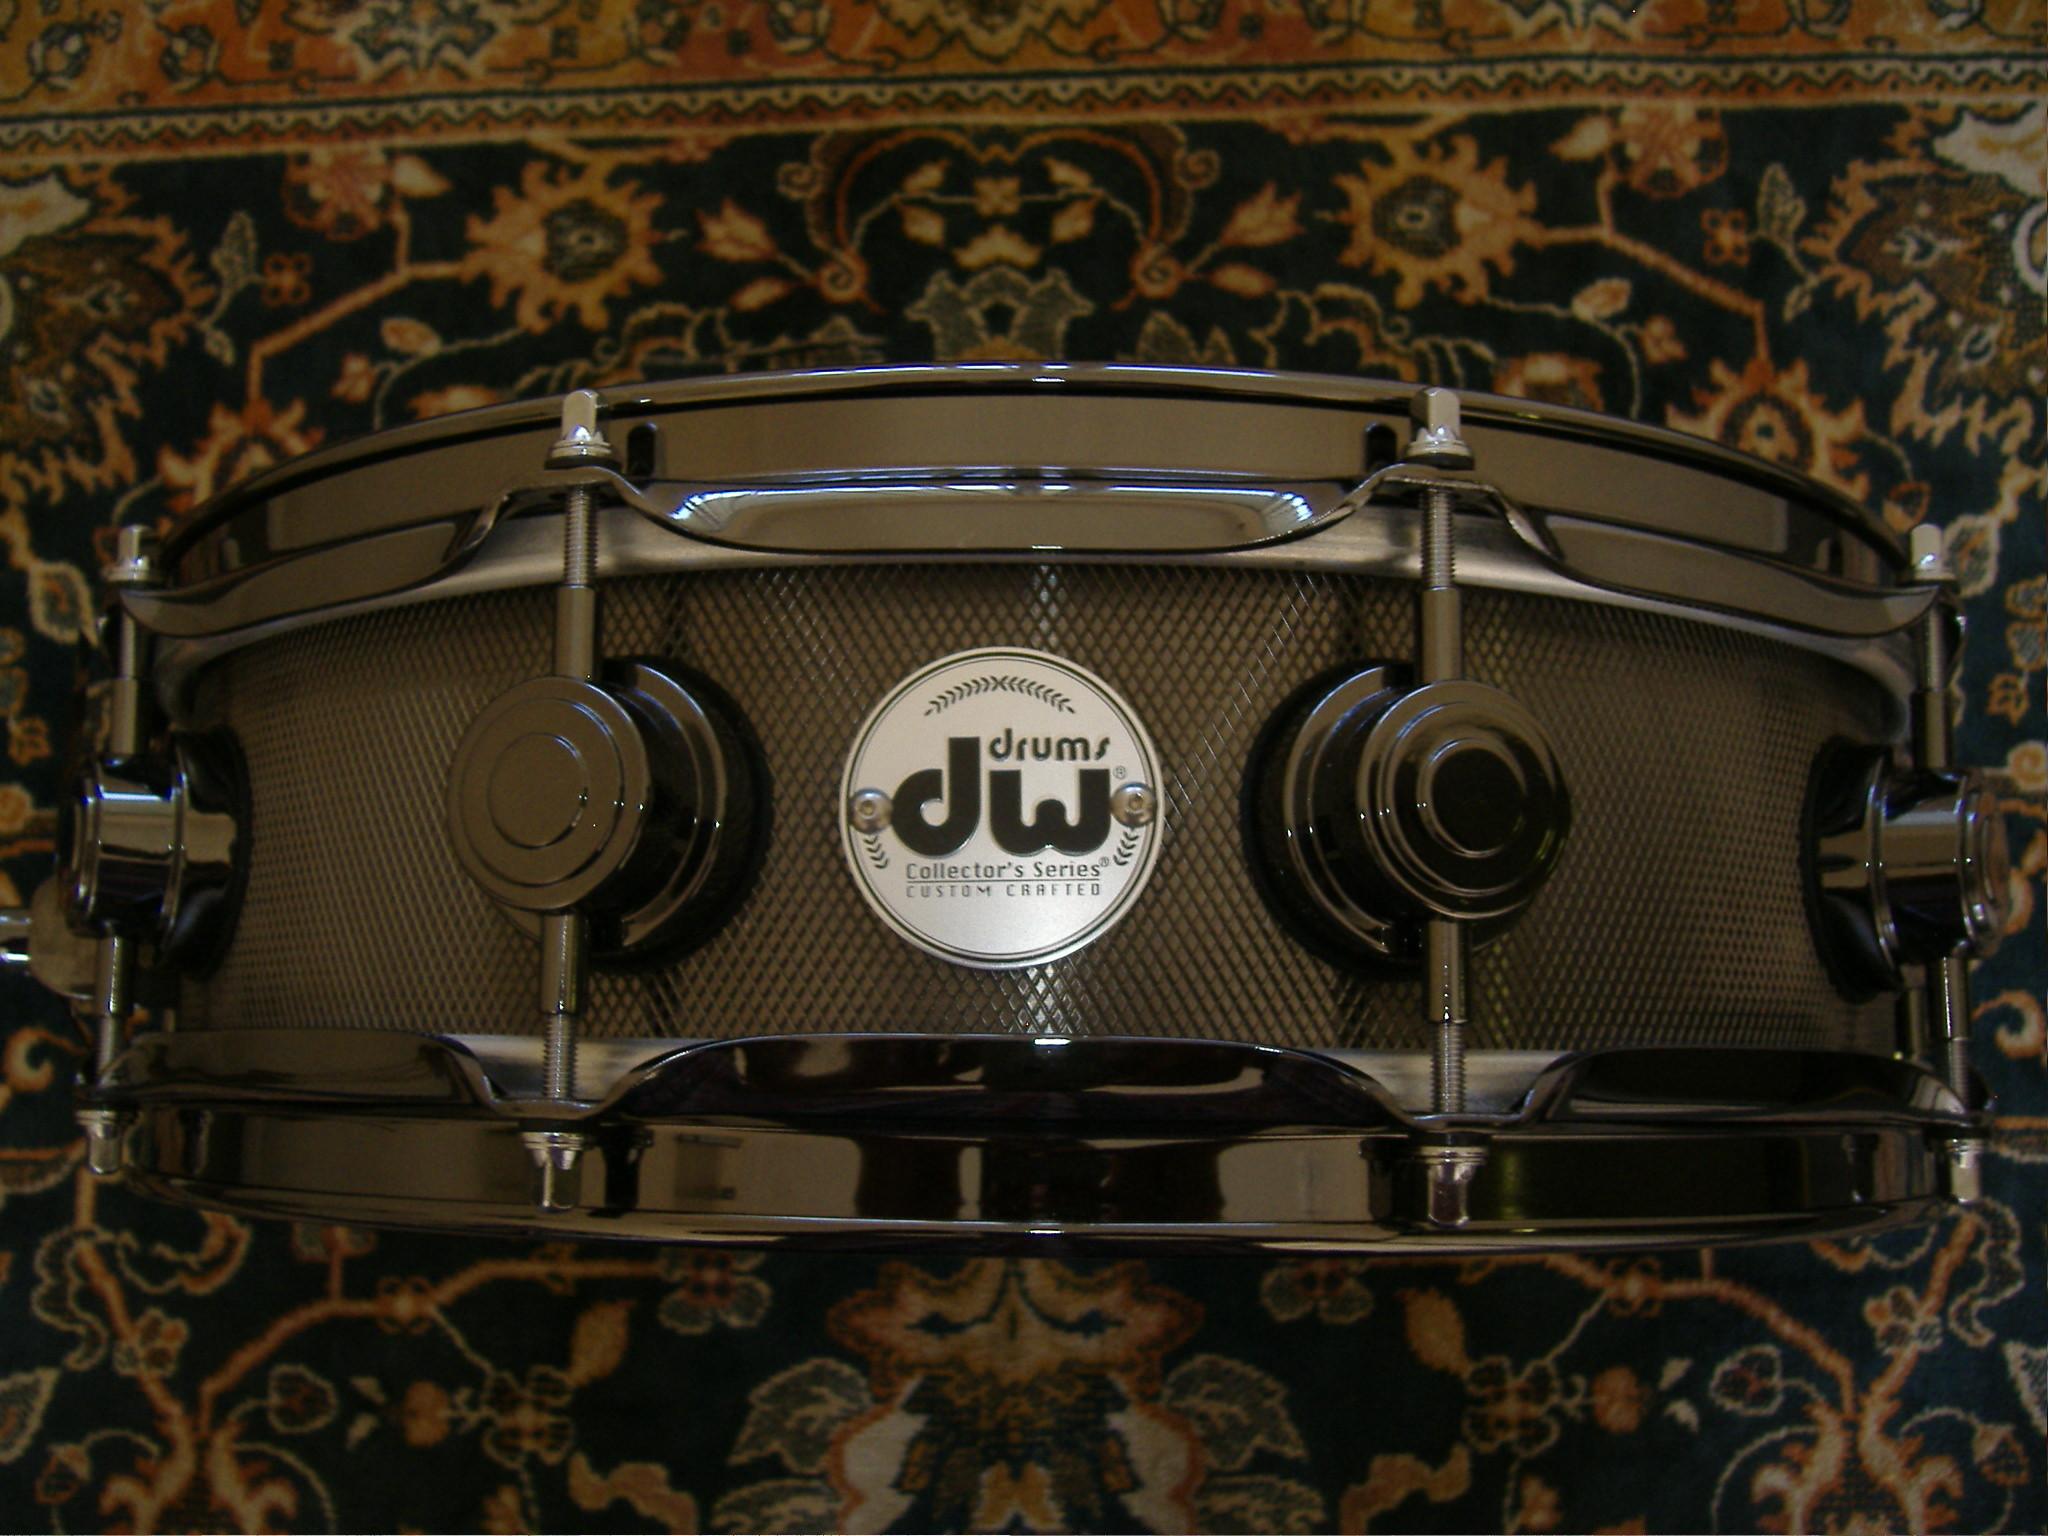 Res: 2048x1536, DW Black Knurled Steel Snare Drum 4X14 with Black Hardware Custom Order